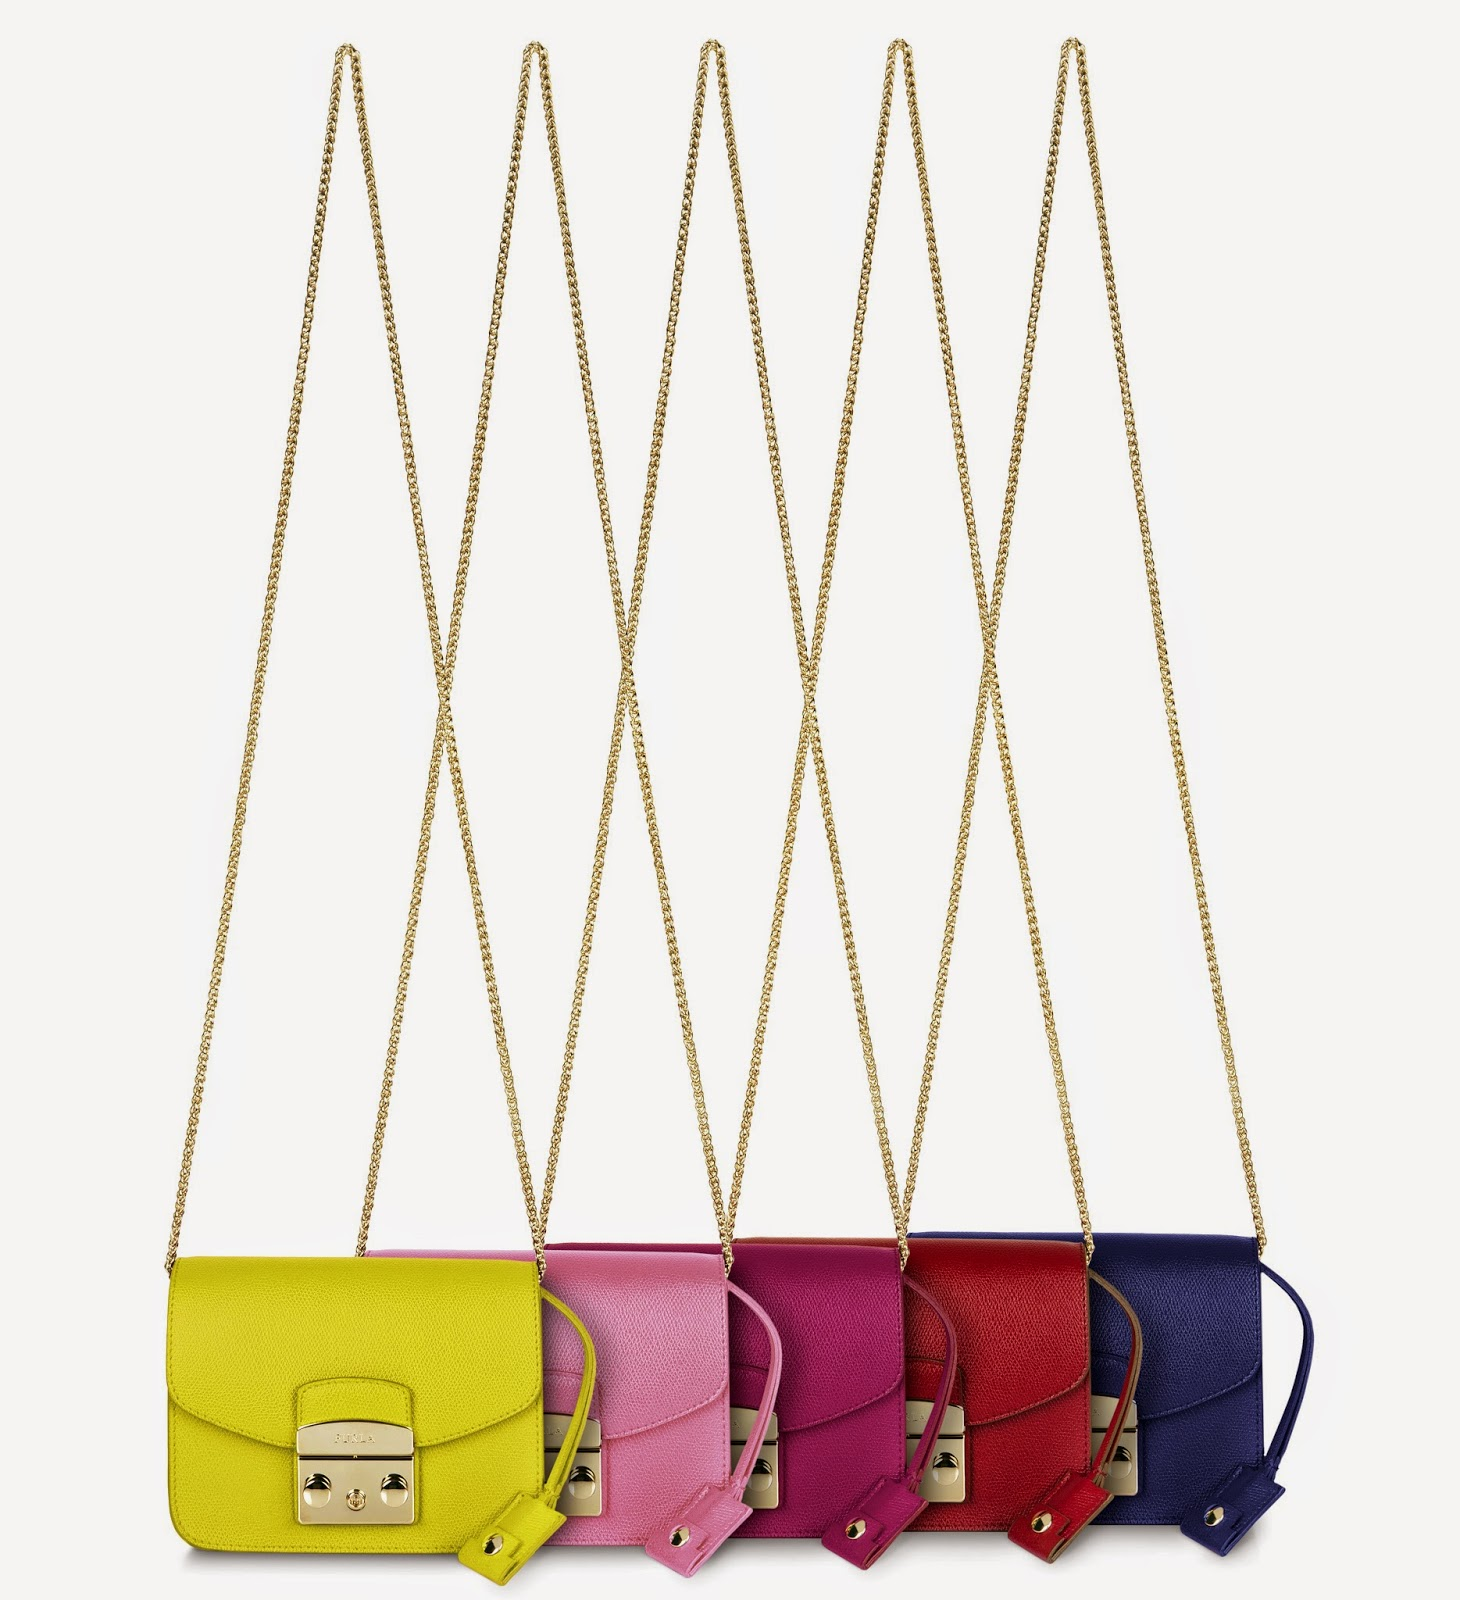 Eniwhere Fashion - Christmas Wishlist - Furla Metropolis